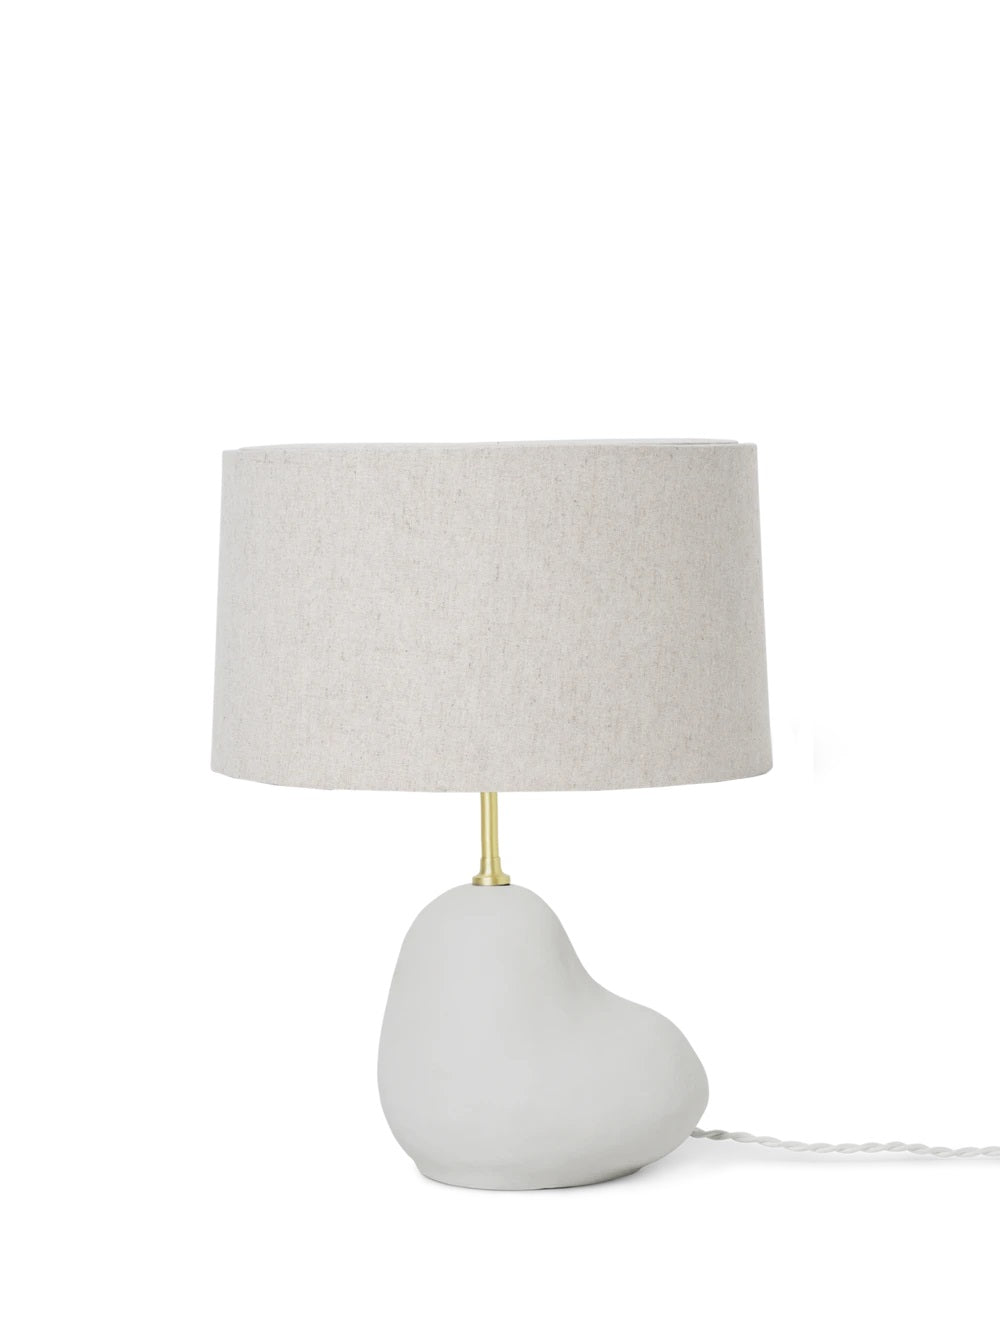 Ferm Living Hebe Lamp - Small